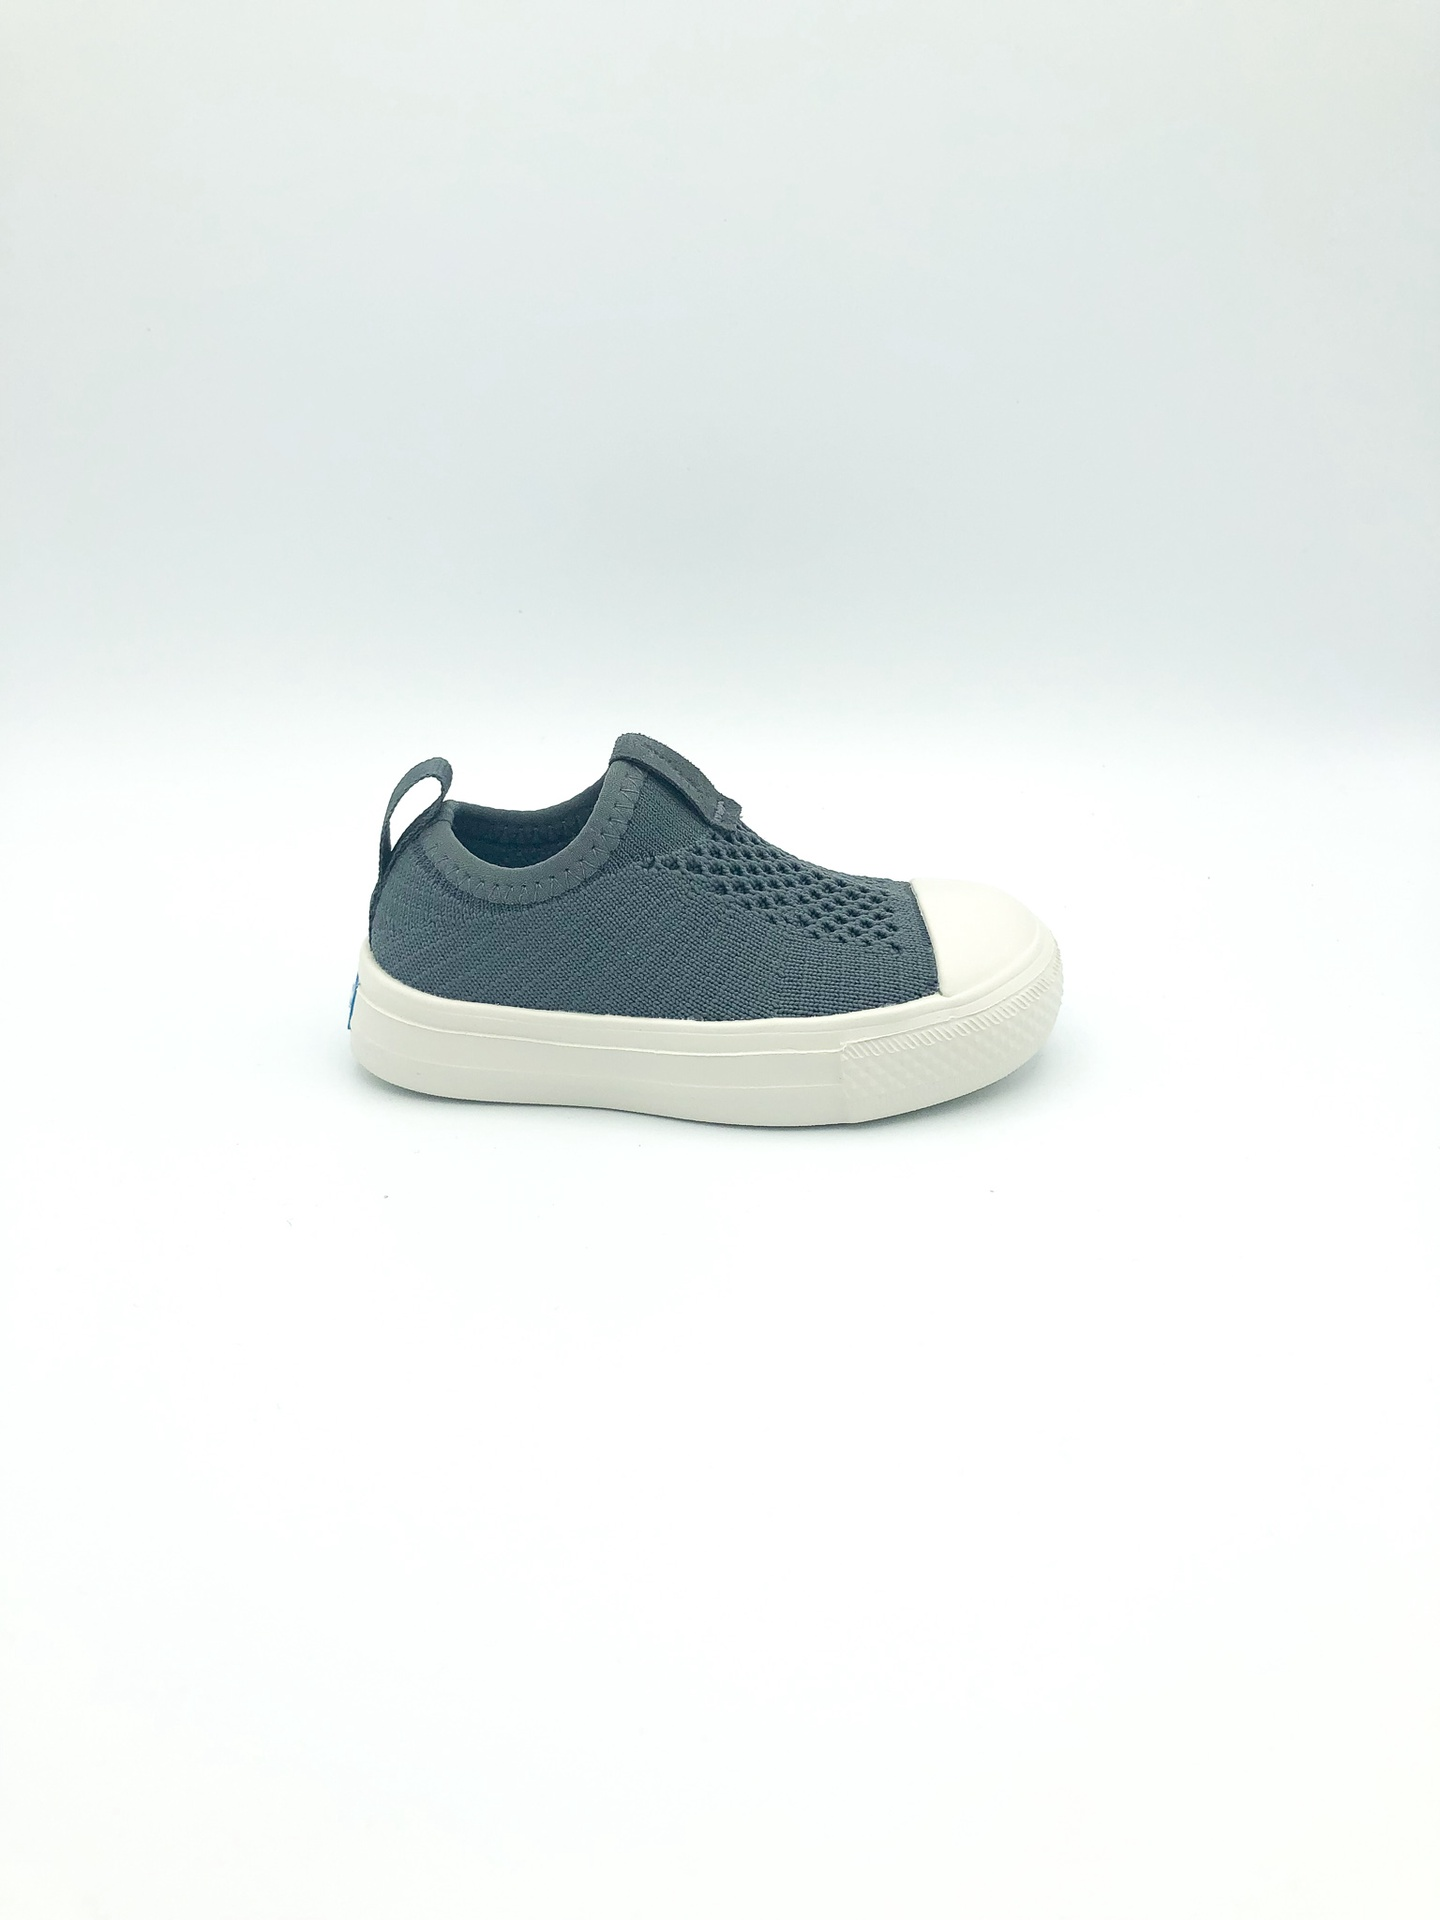 PEOPLE FOOTWEAR - THE PHILLIPS CHILD KNIT IN MOONROCK GREY/PICKET WHITE